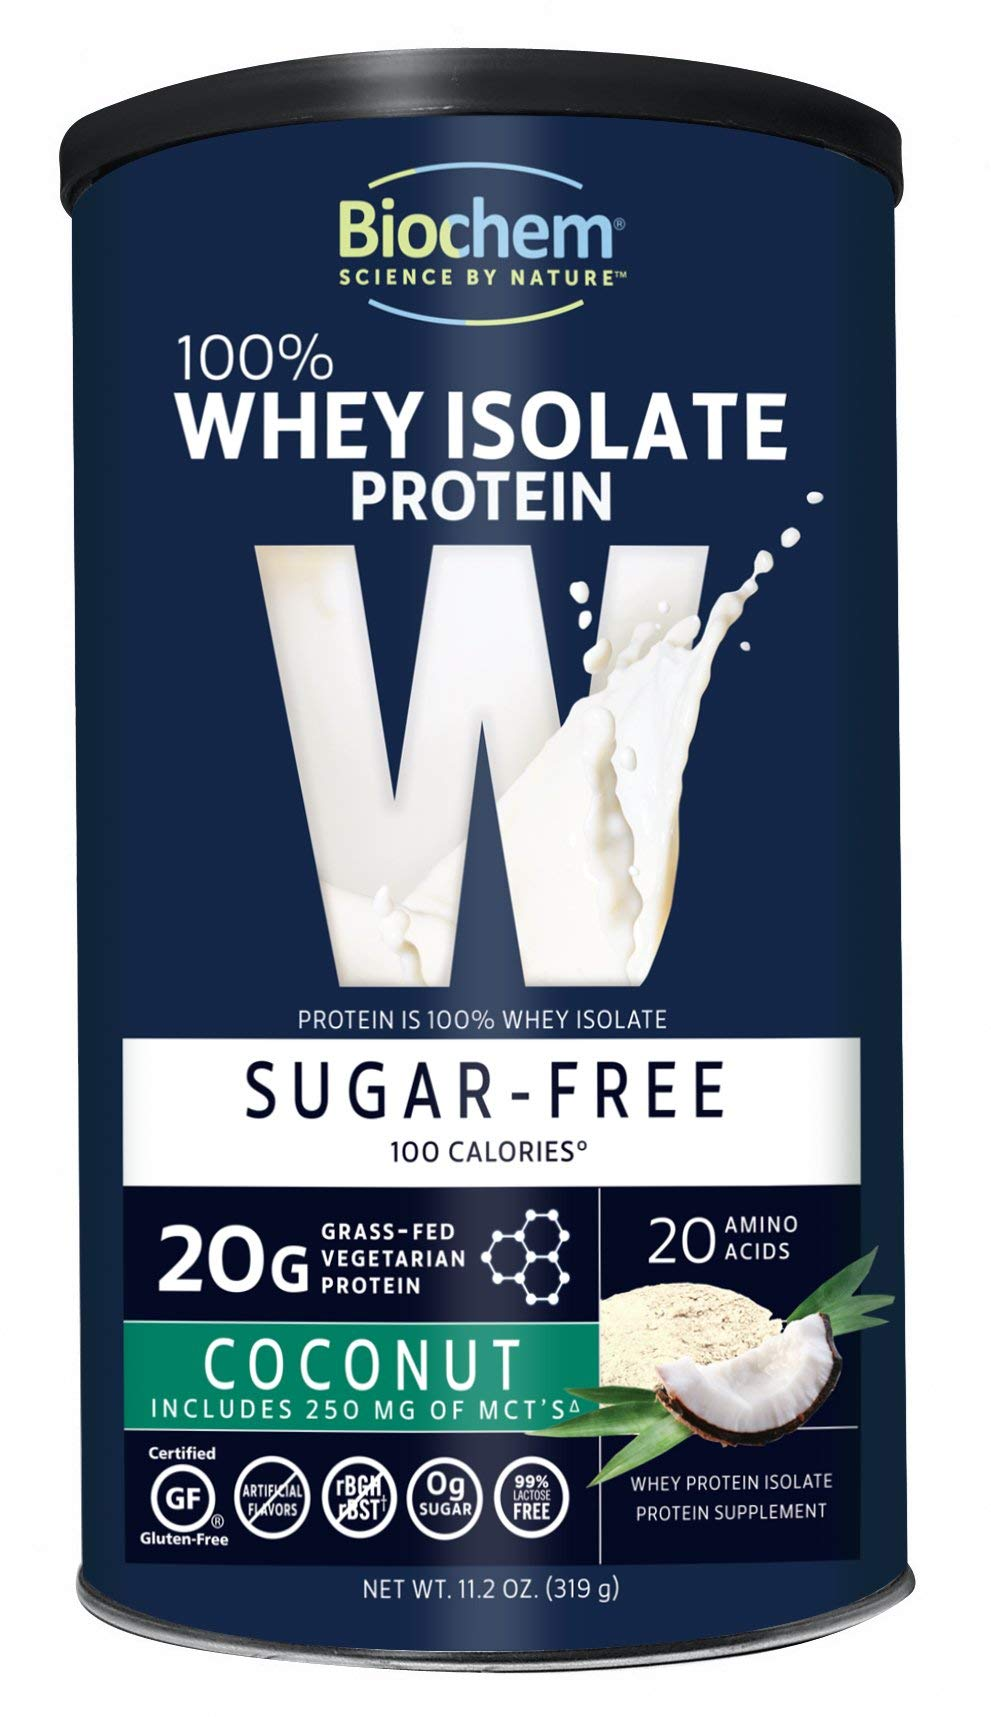 Biochem 100% Whey Isolate Protein - 11.2 oz - Sugar Free Coconut - 20g Vegetarian Protein - Keto-Friendly - Amino Acids - May Help Support Immune System - Easy to Mix - Magnesium